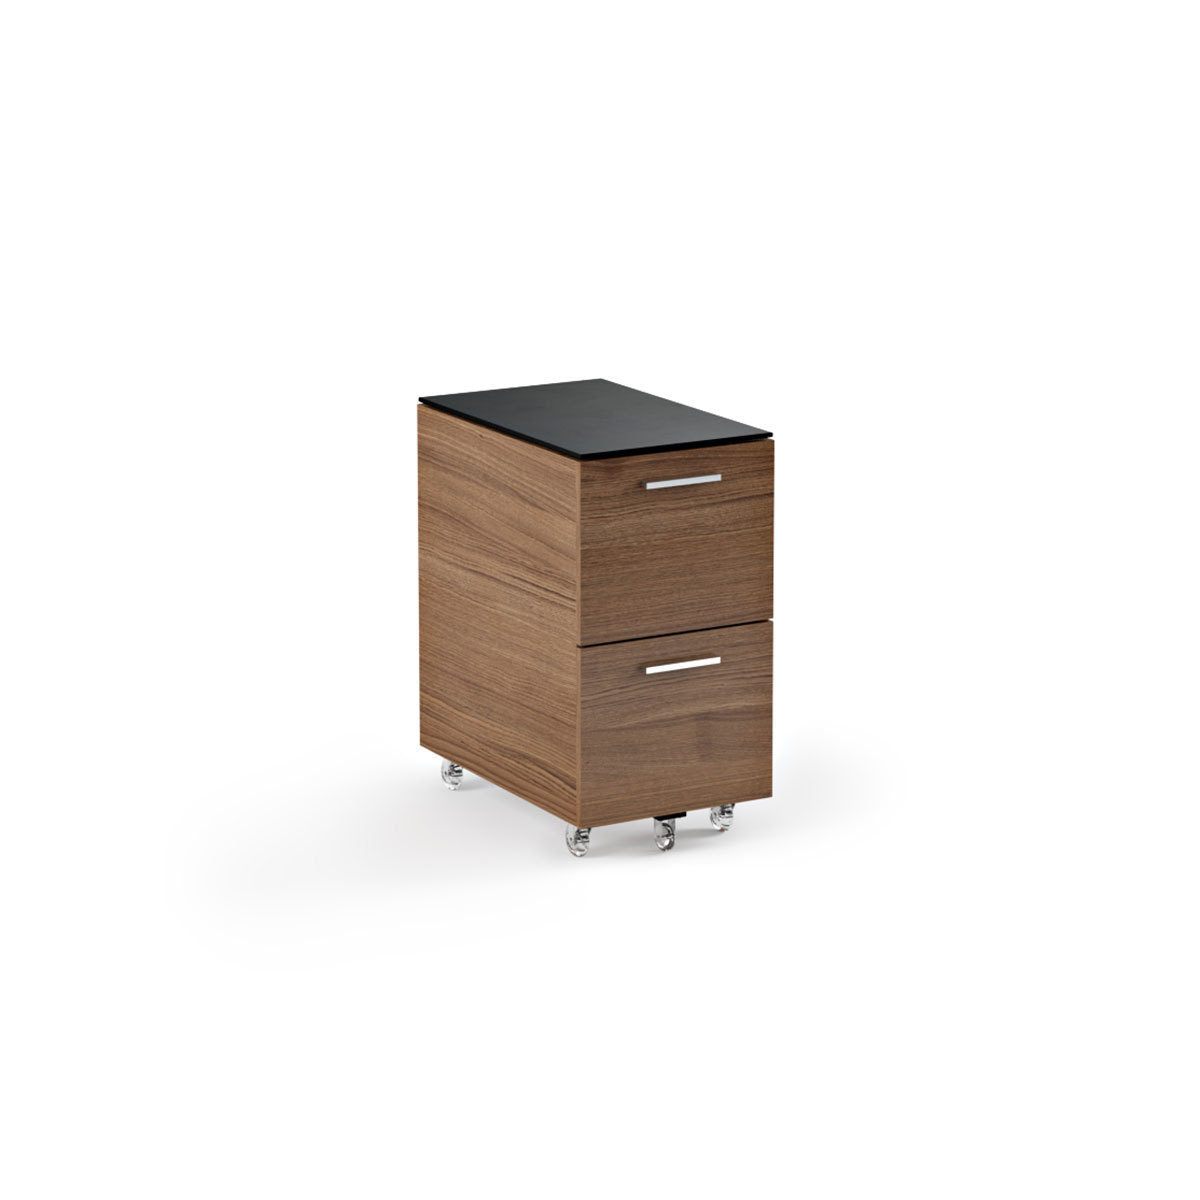 Sequel 6005 Mobile File Cabinet